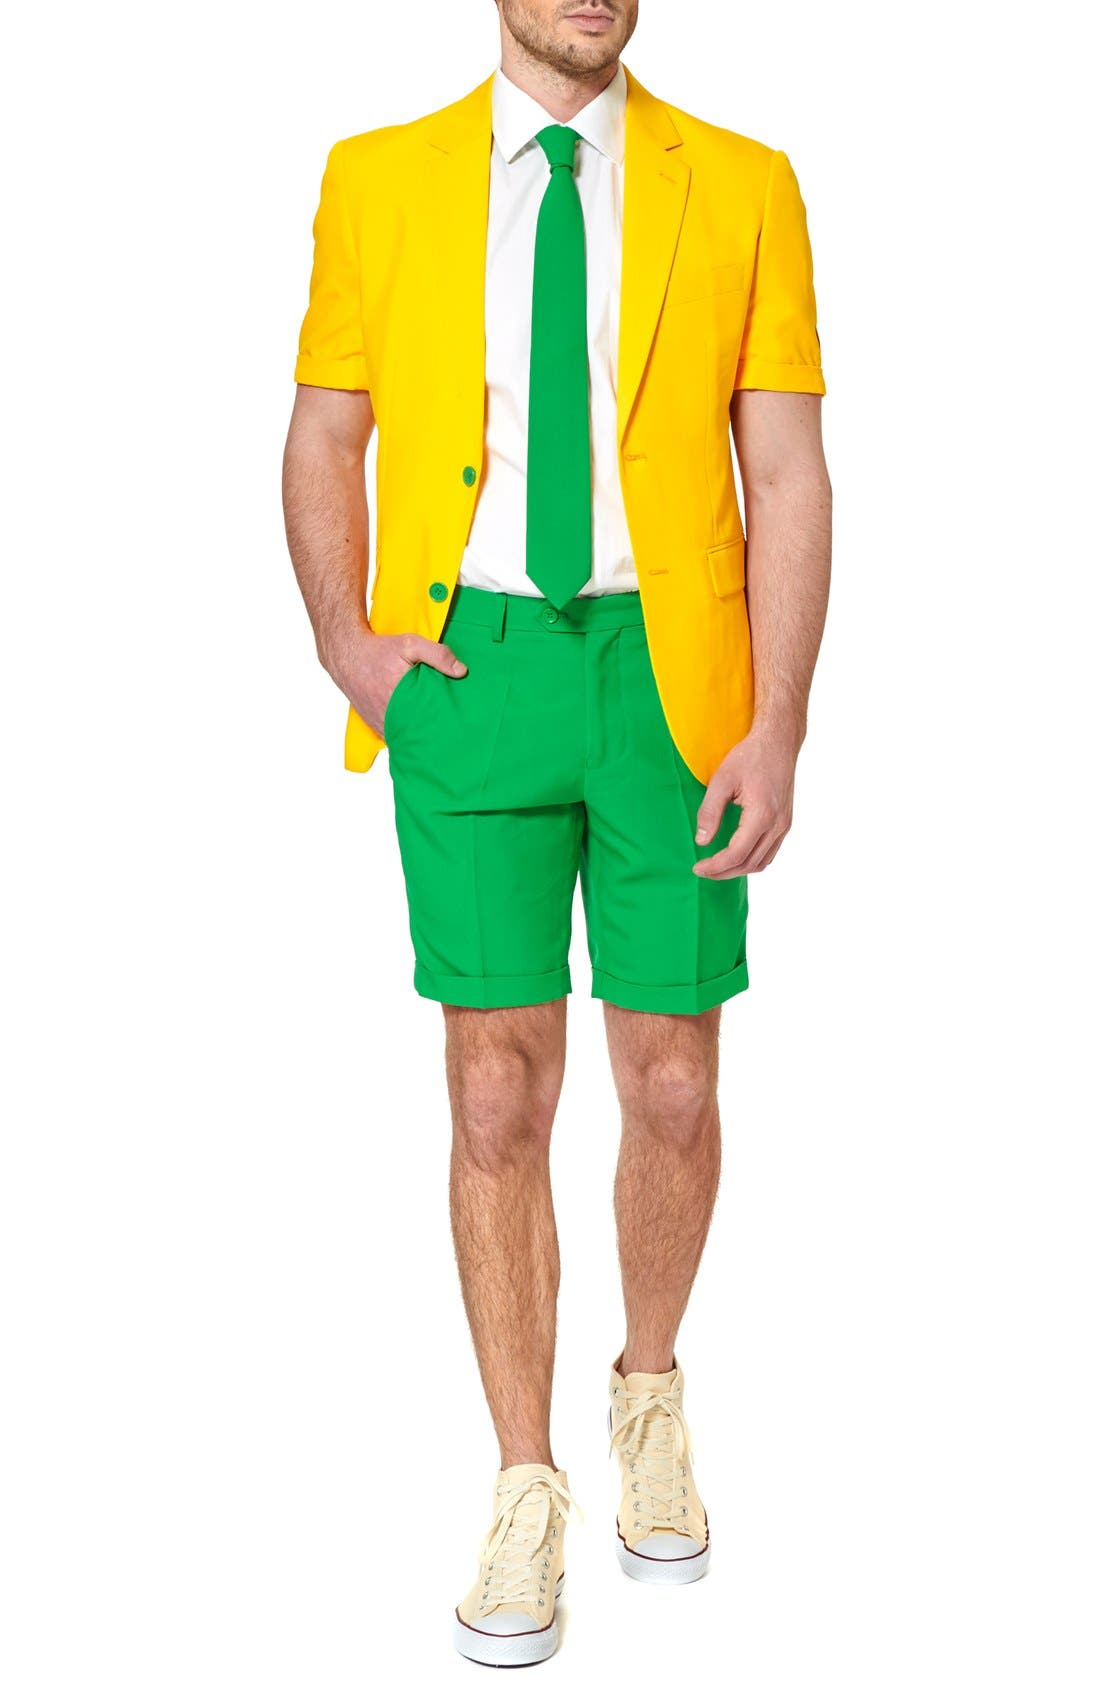 Main Image - OppoSuits 'Summer Green & Gold' Trim Fit Short Suit with Tie